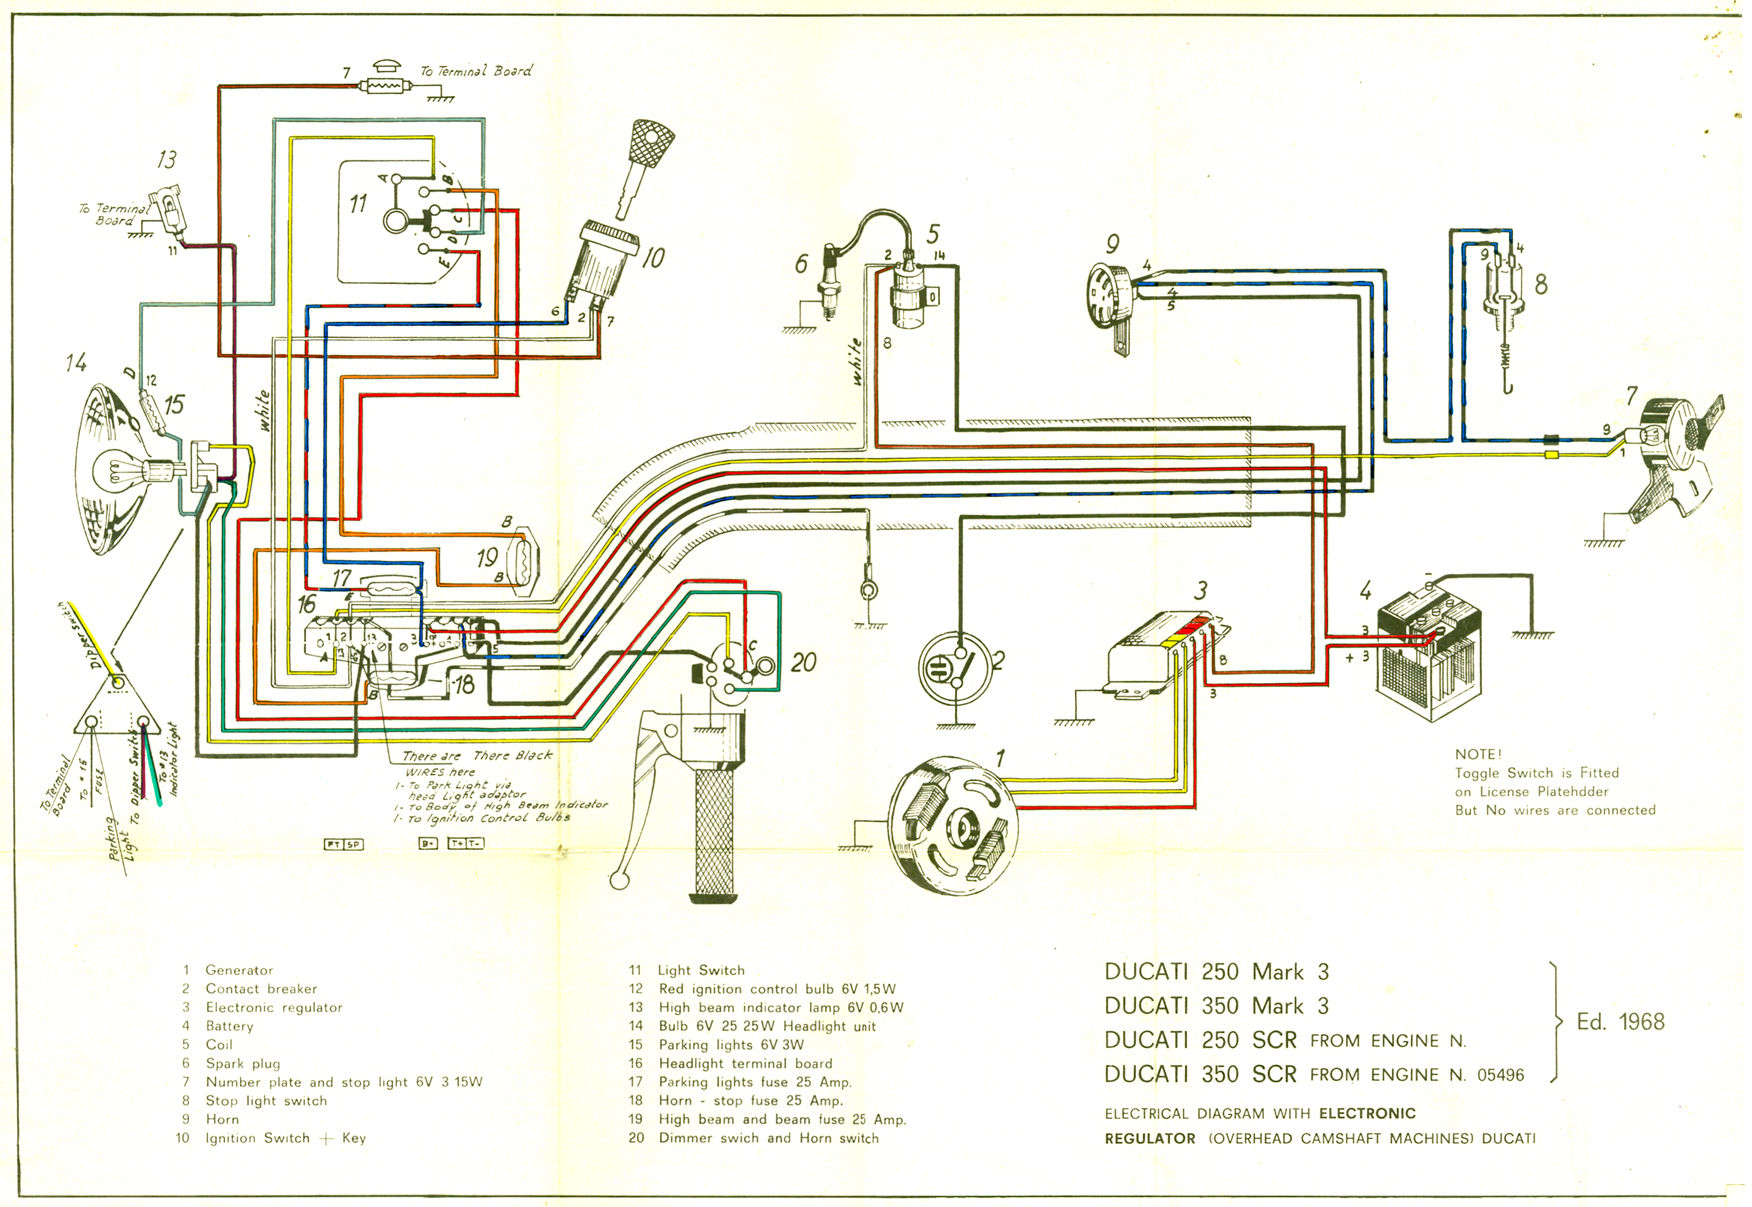 lambretta electronic wiring diagram lincoln sa 200 welder diagrams digital ignition vintage motorcycle